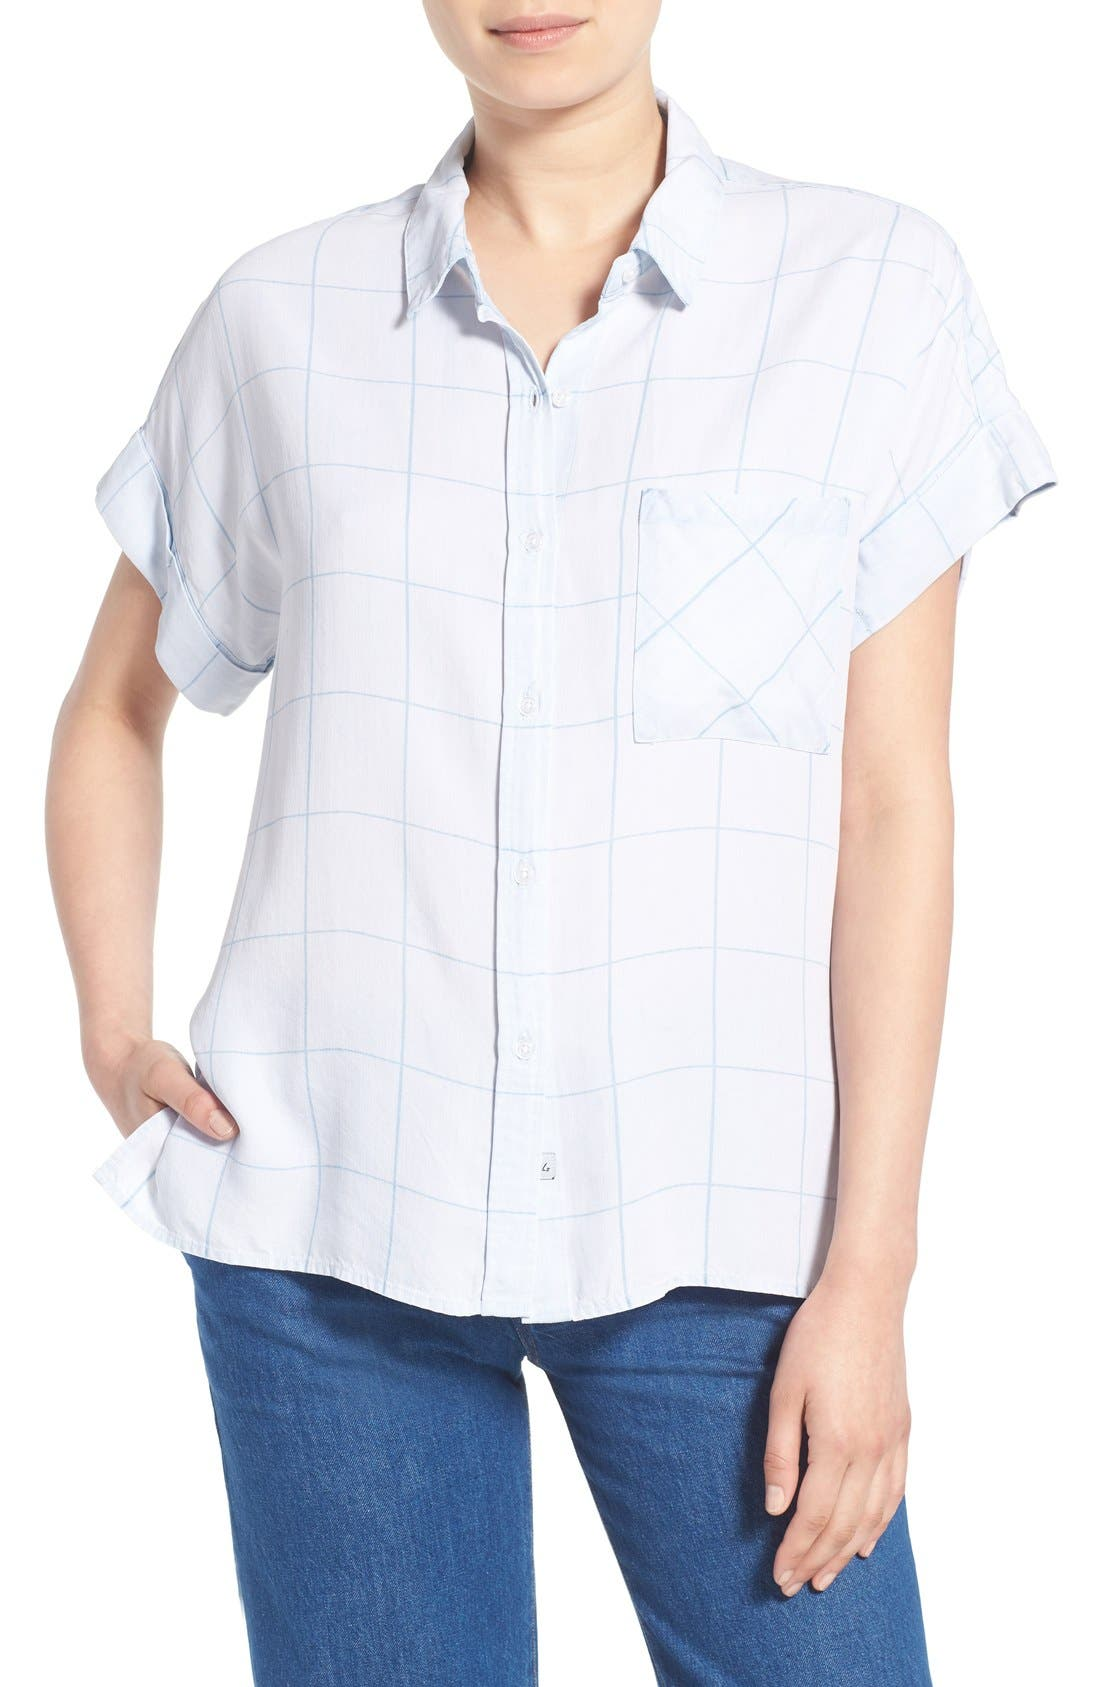 Alternate Image 1 Selected - Rails 'Whitney' Windowpane Print Top